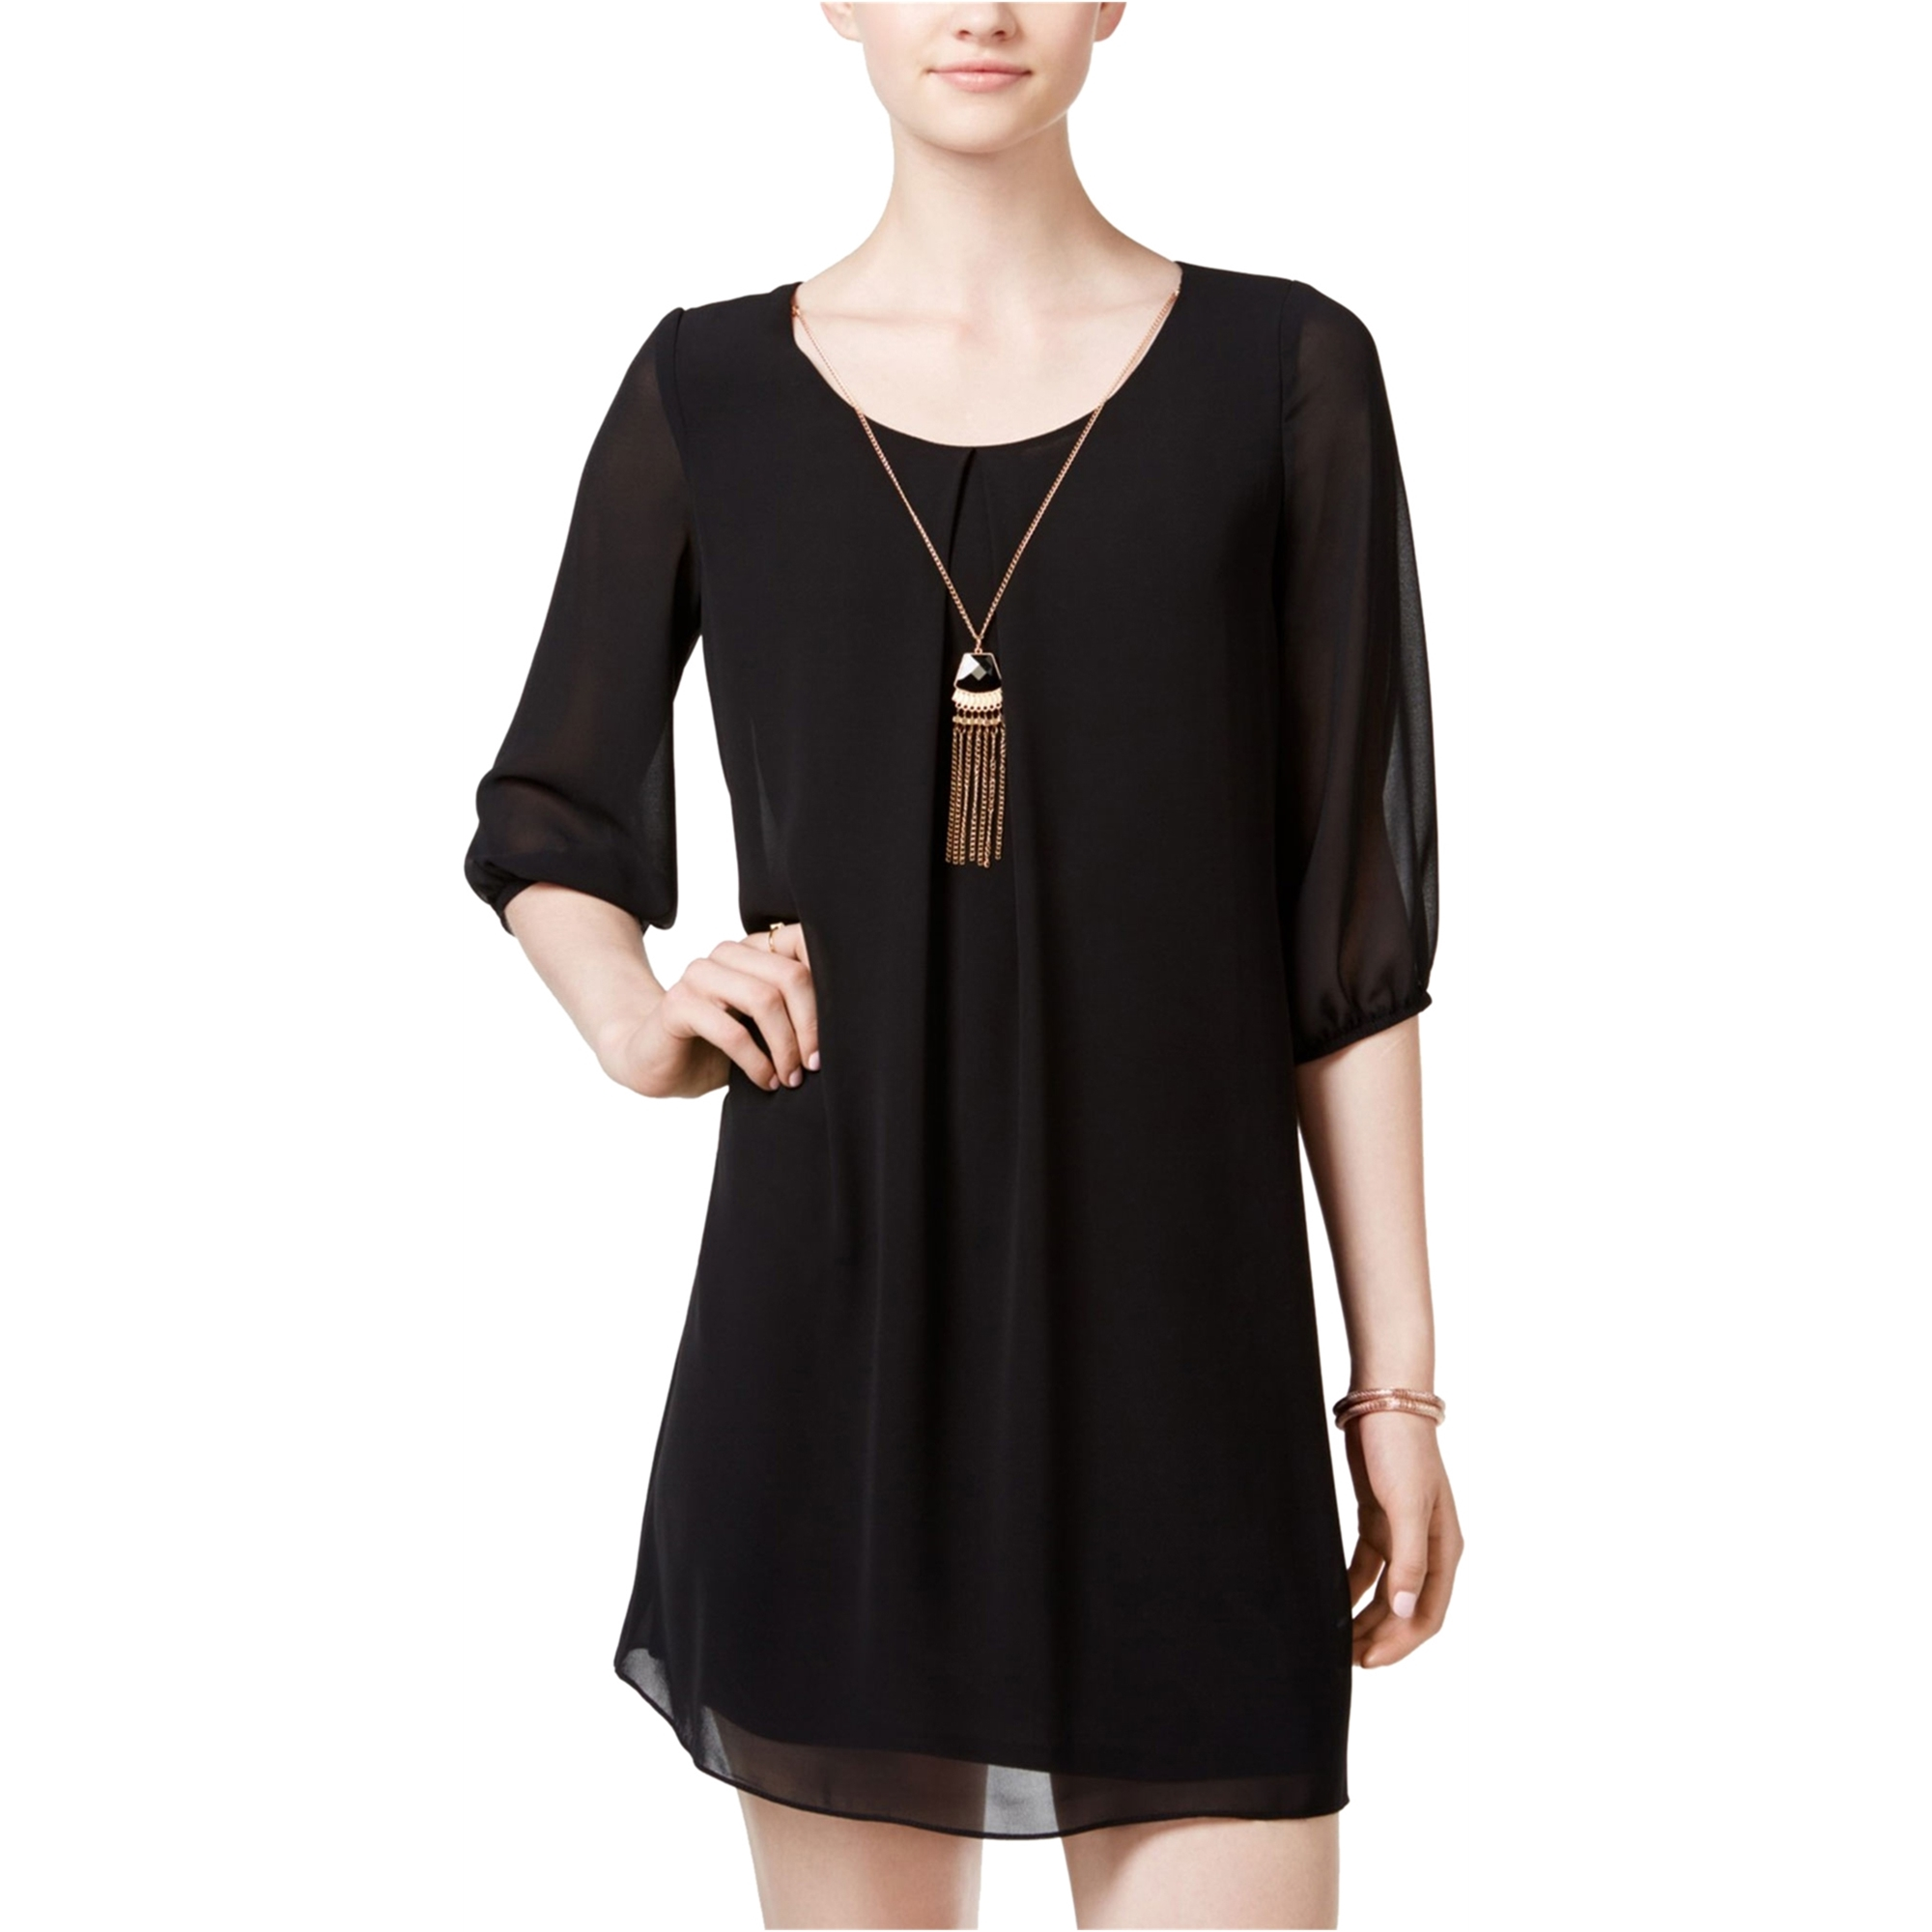 Bcx Womens Cutout Back A-Line Dress